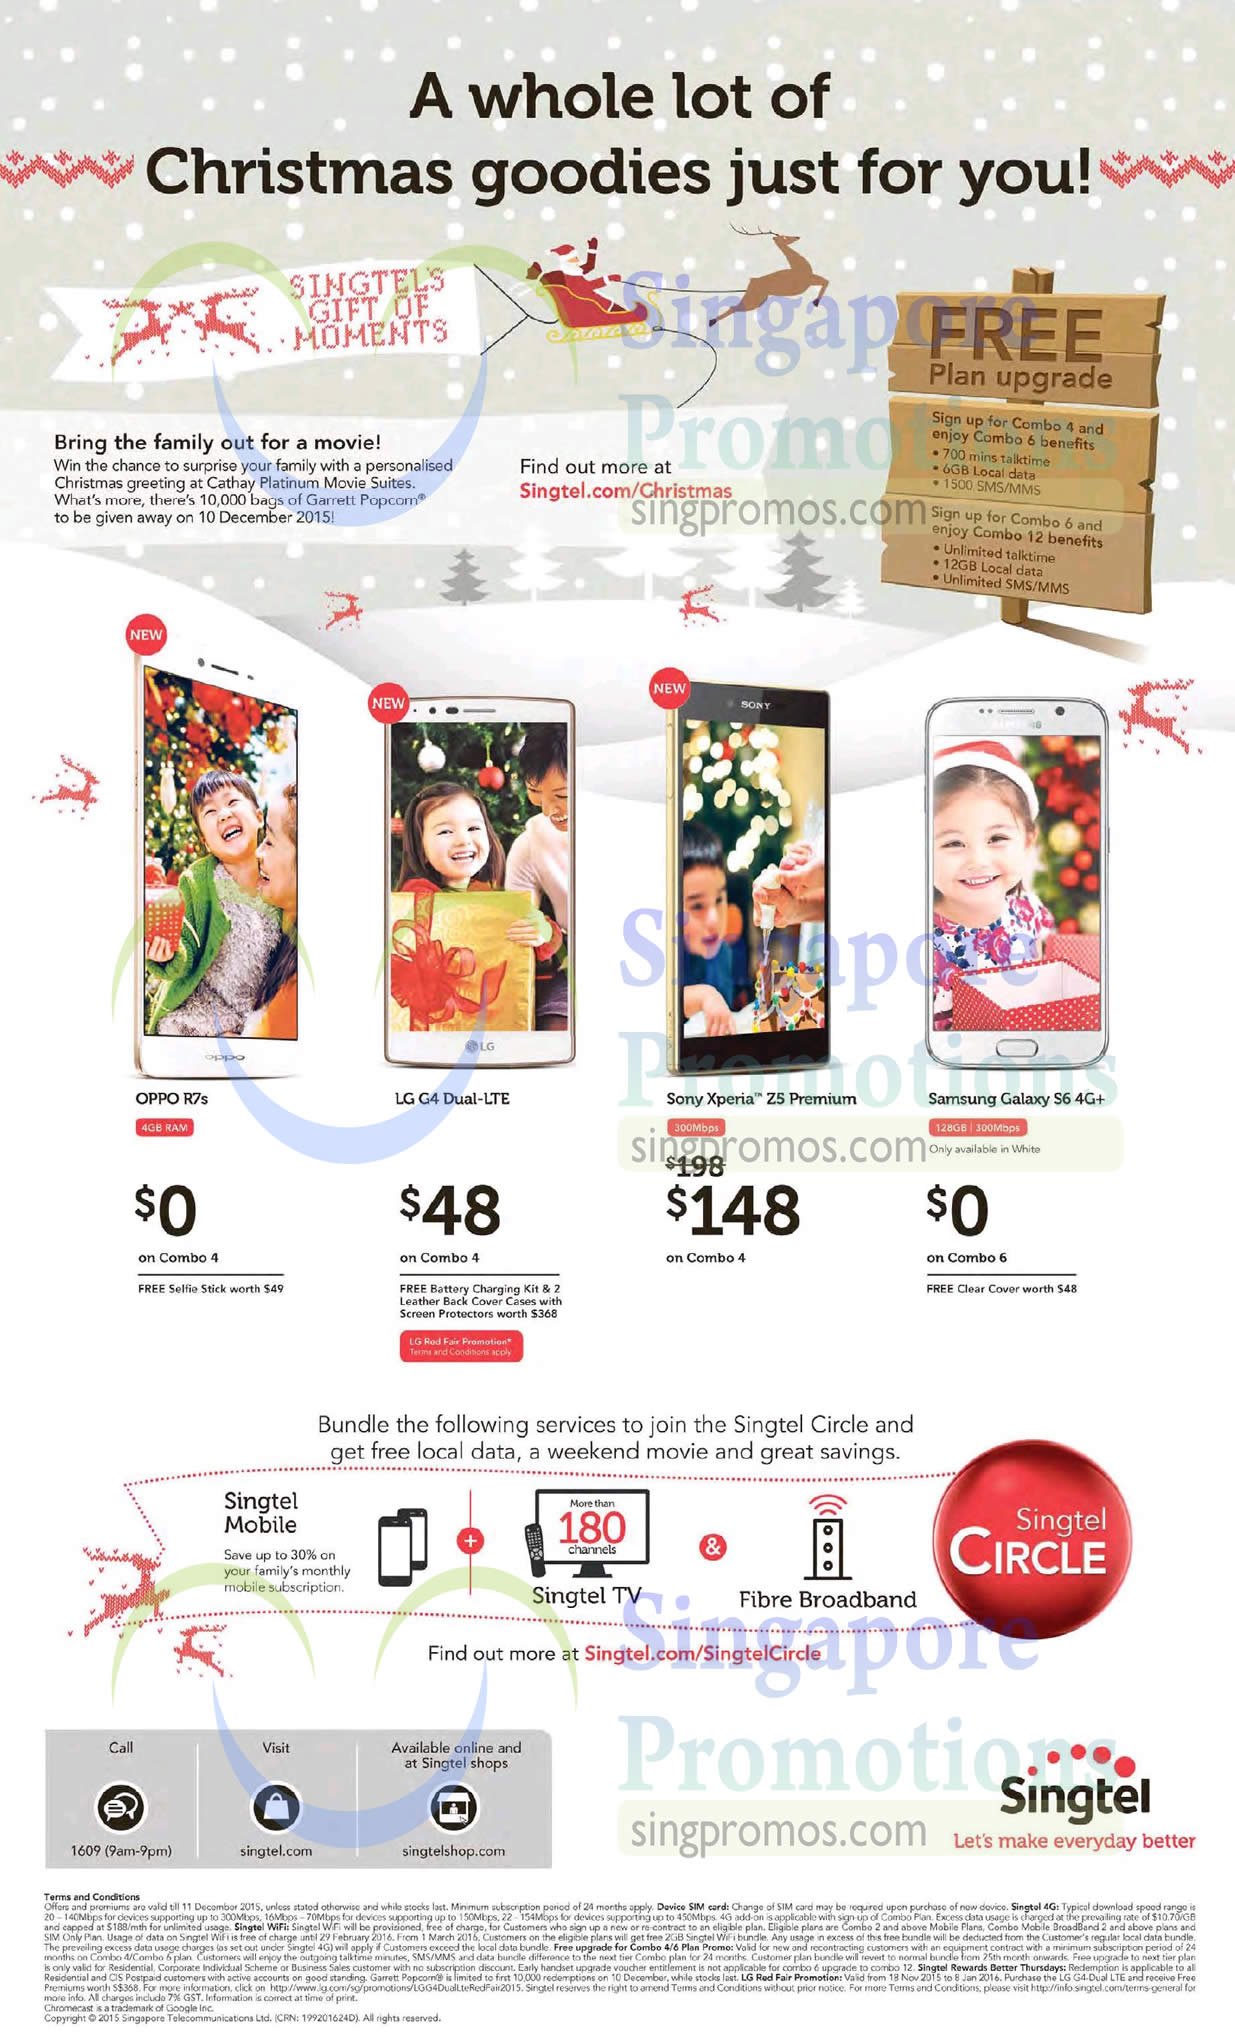 Singtel Mobile Combo 4/6 Plans Free Upgrade Promotion From 5 Dec 2015